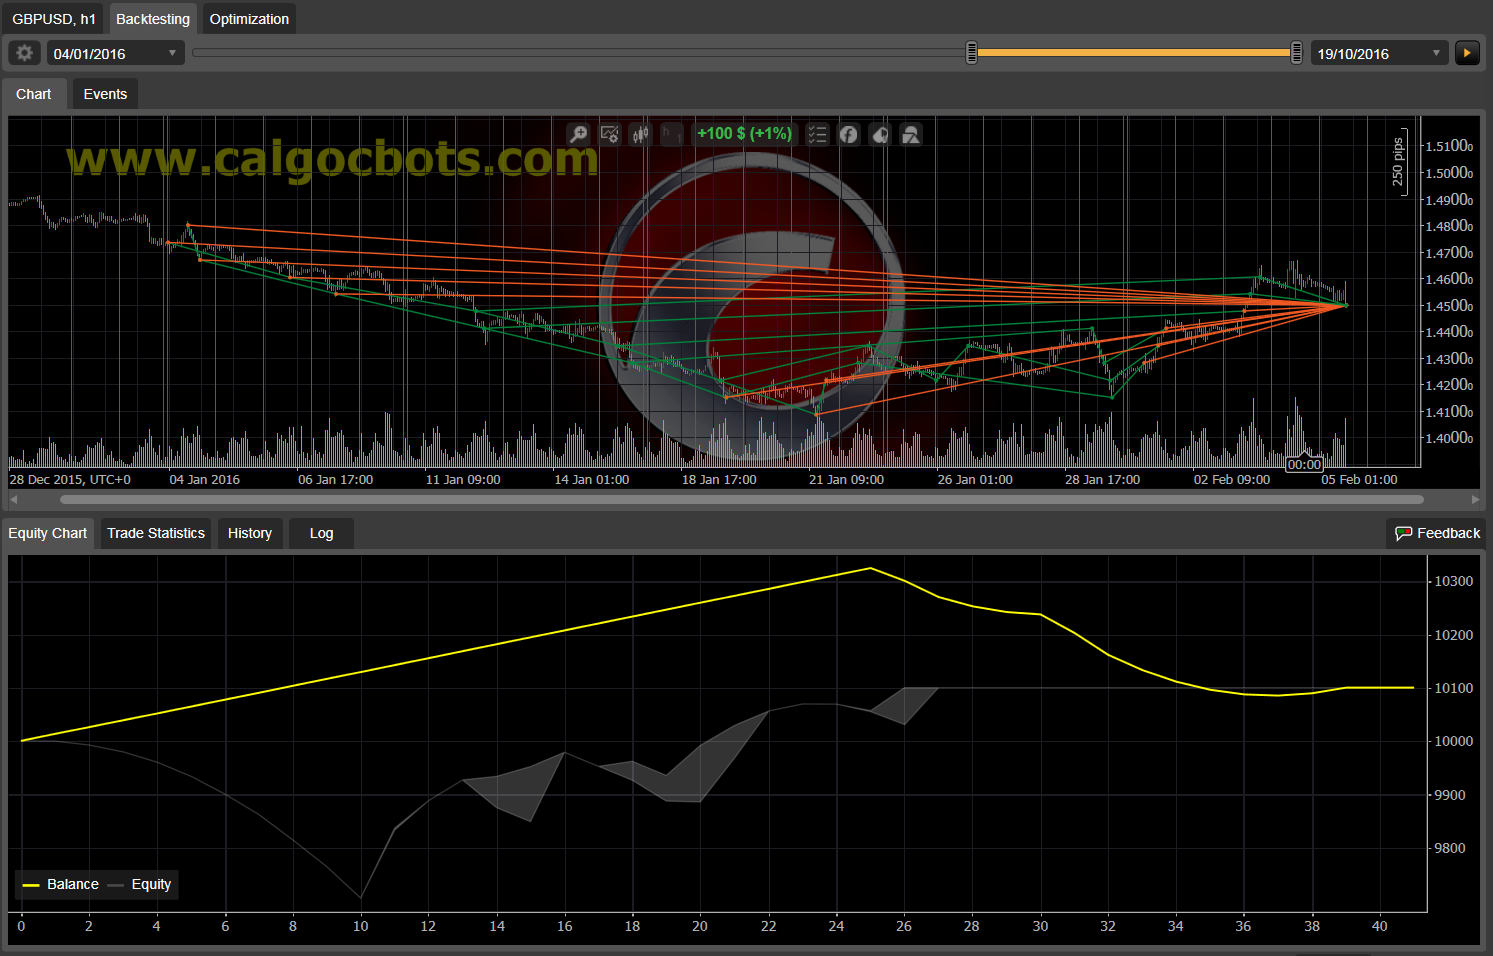 Dual Grid Hedge GBP USD 1h cAlgo cBots cTrader 1k 100 50 100 - 06